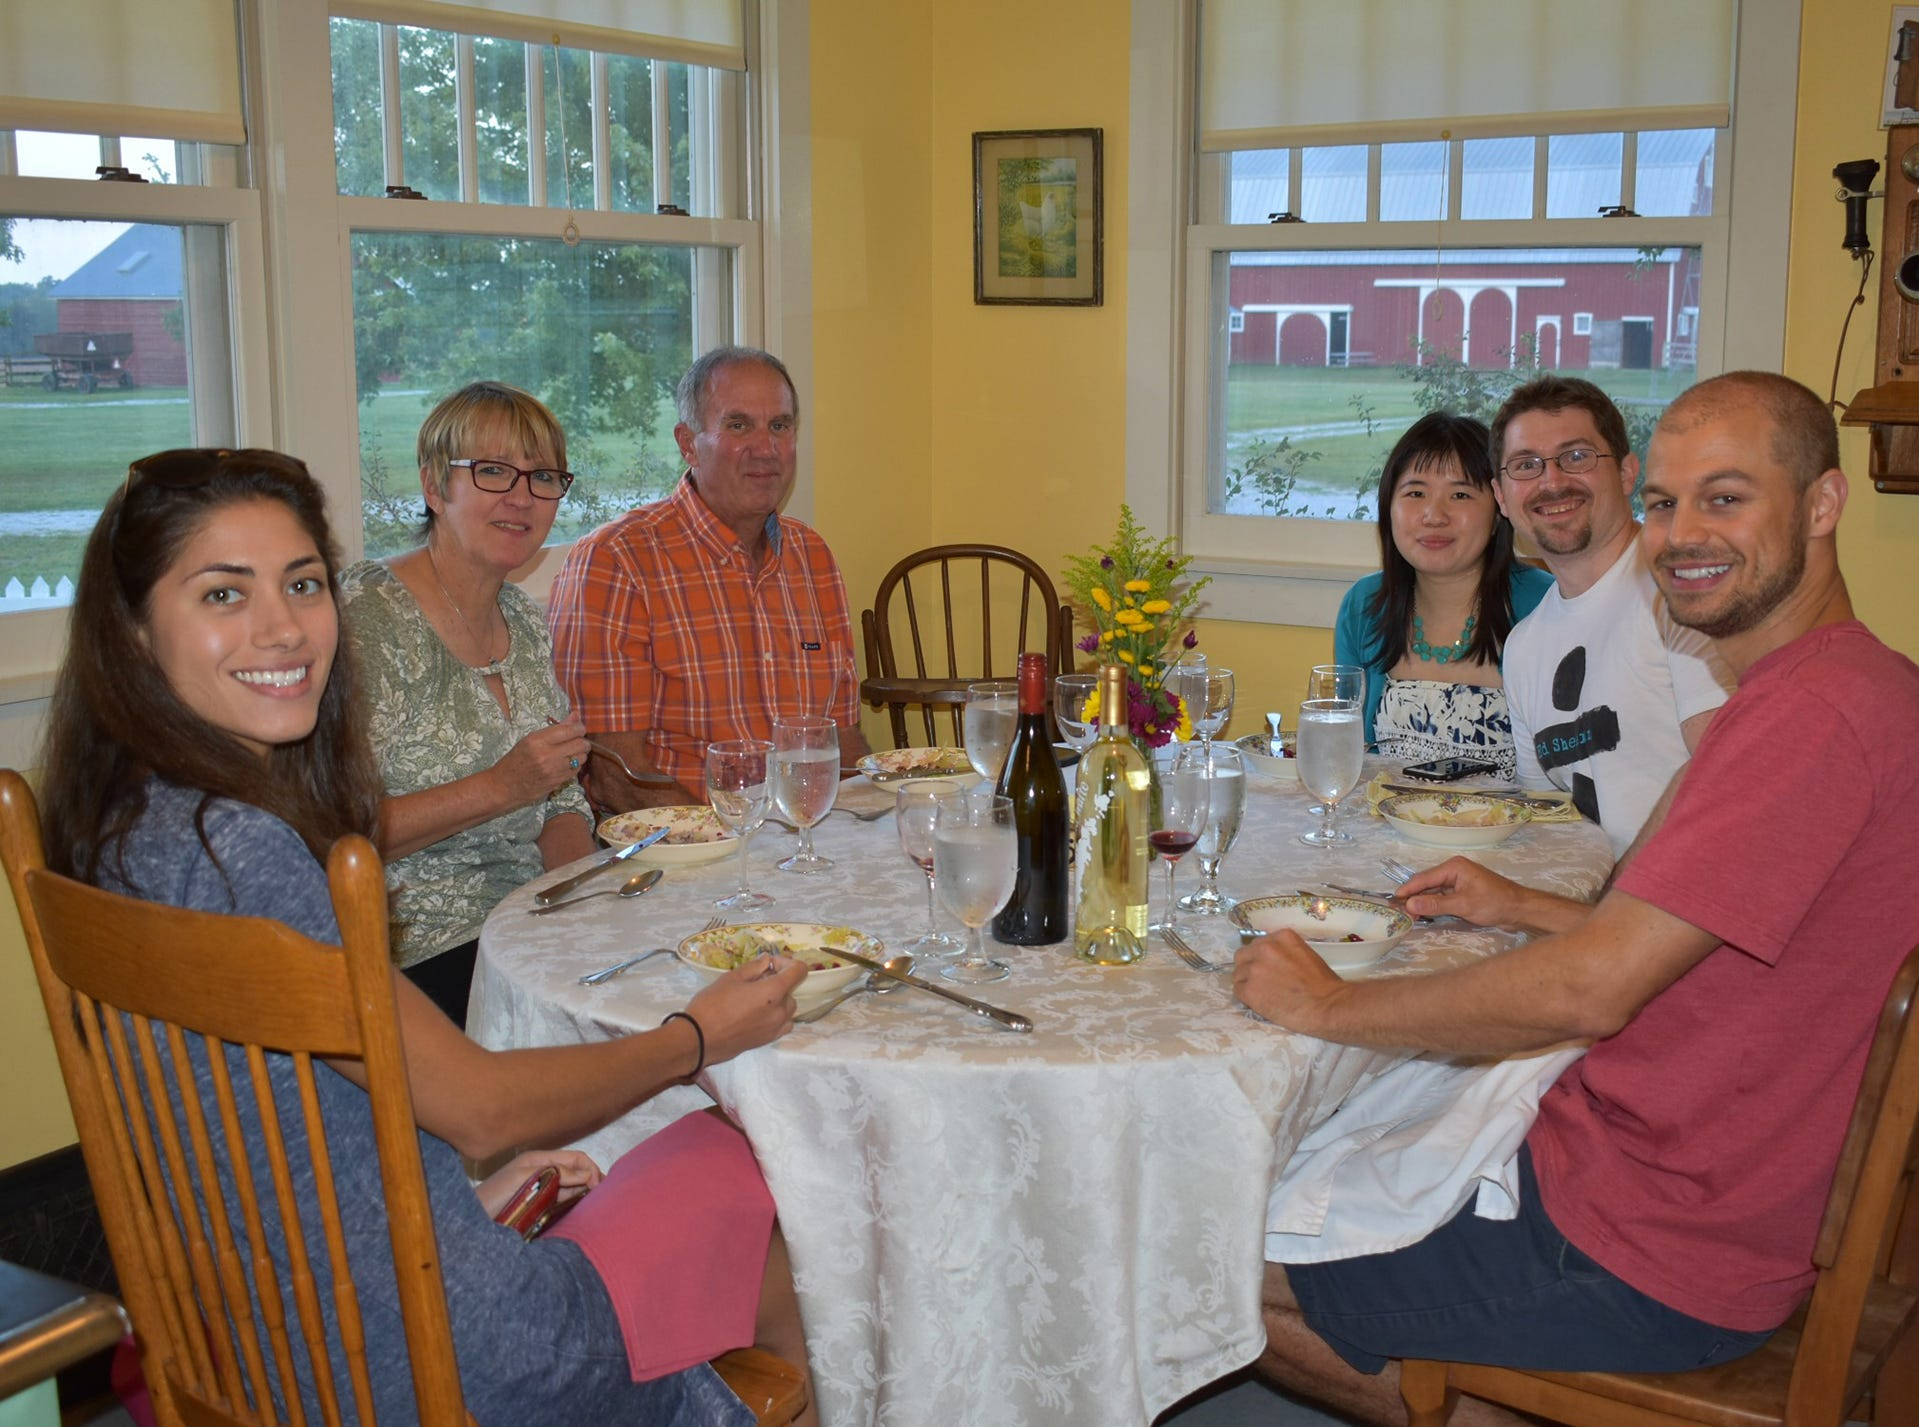 Guests enjoy unique farm-to-table dishes prepared by Reed at the 1920s-era farmhouse at the state park.